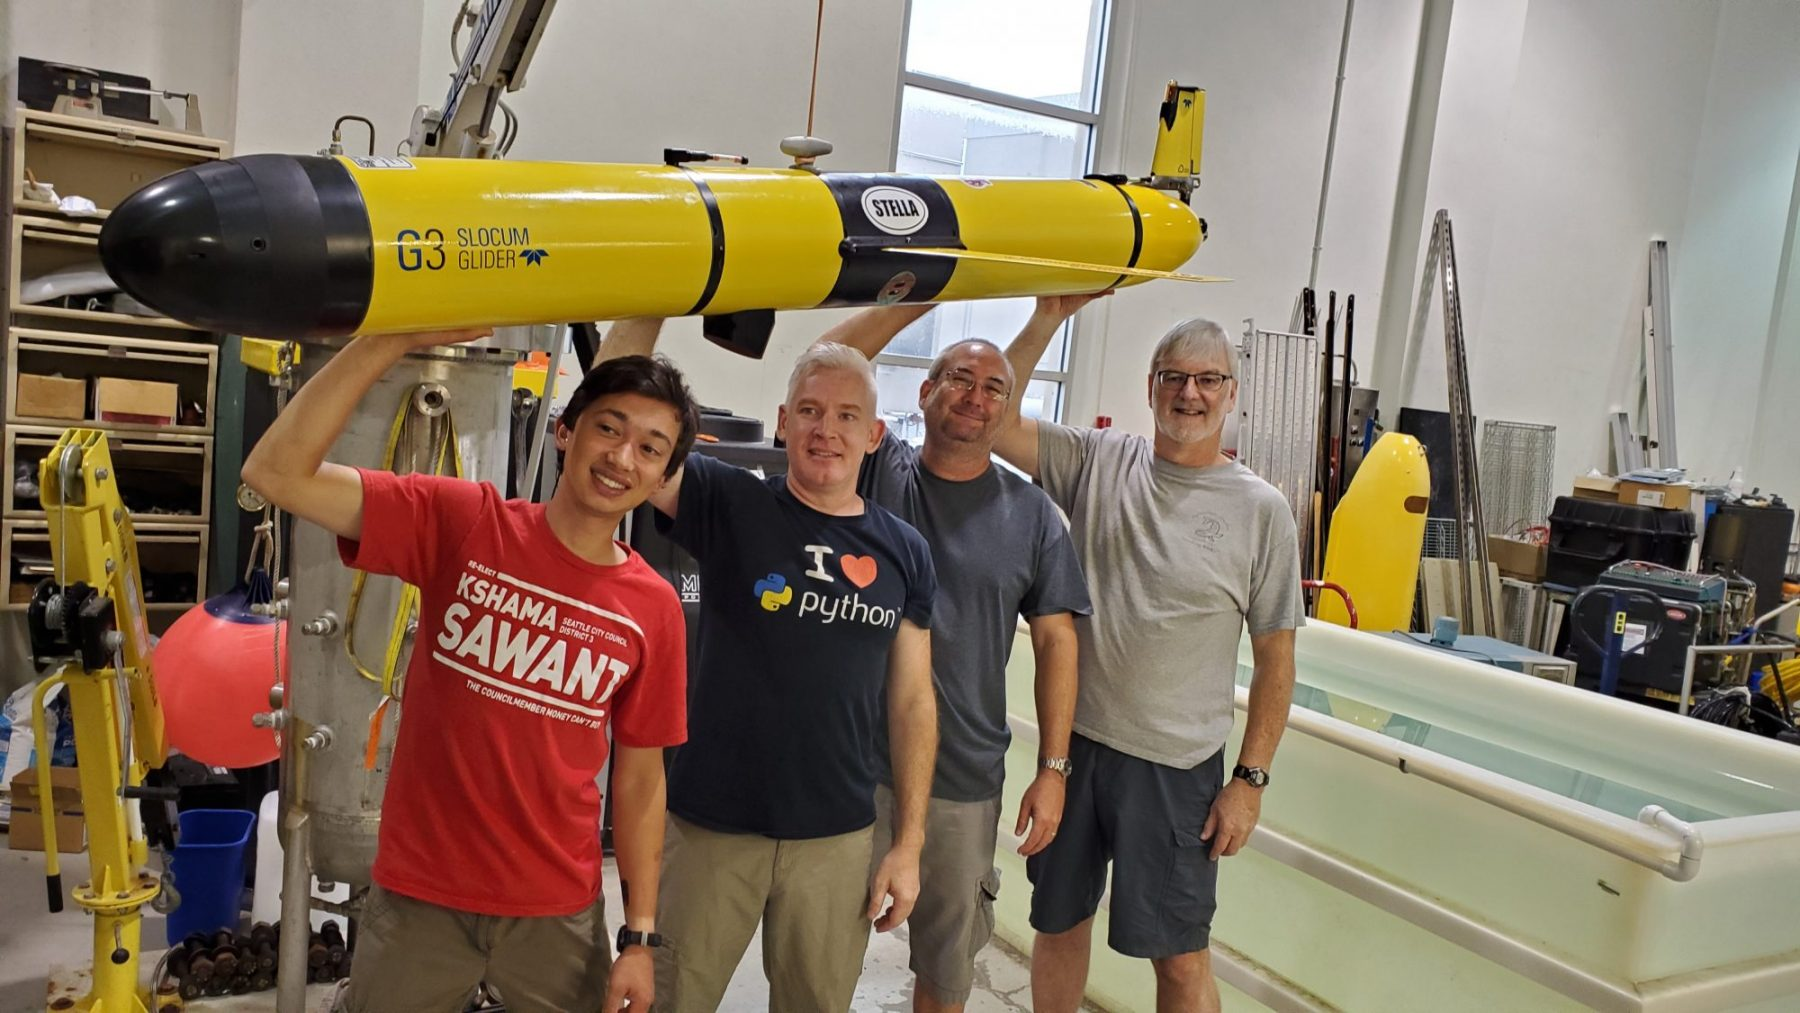 Four of the scientists holding the glider in the lab